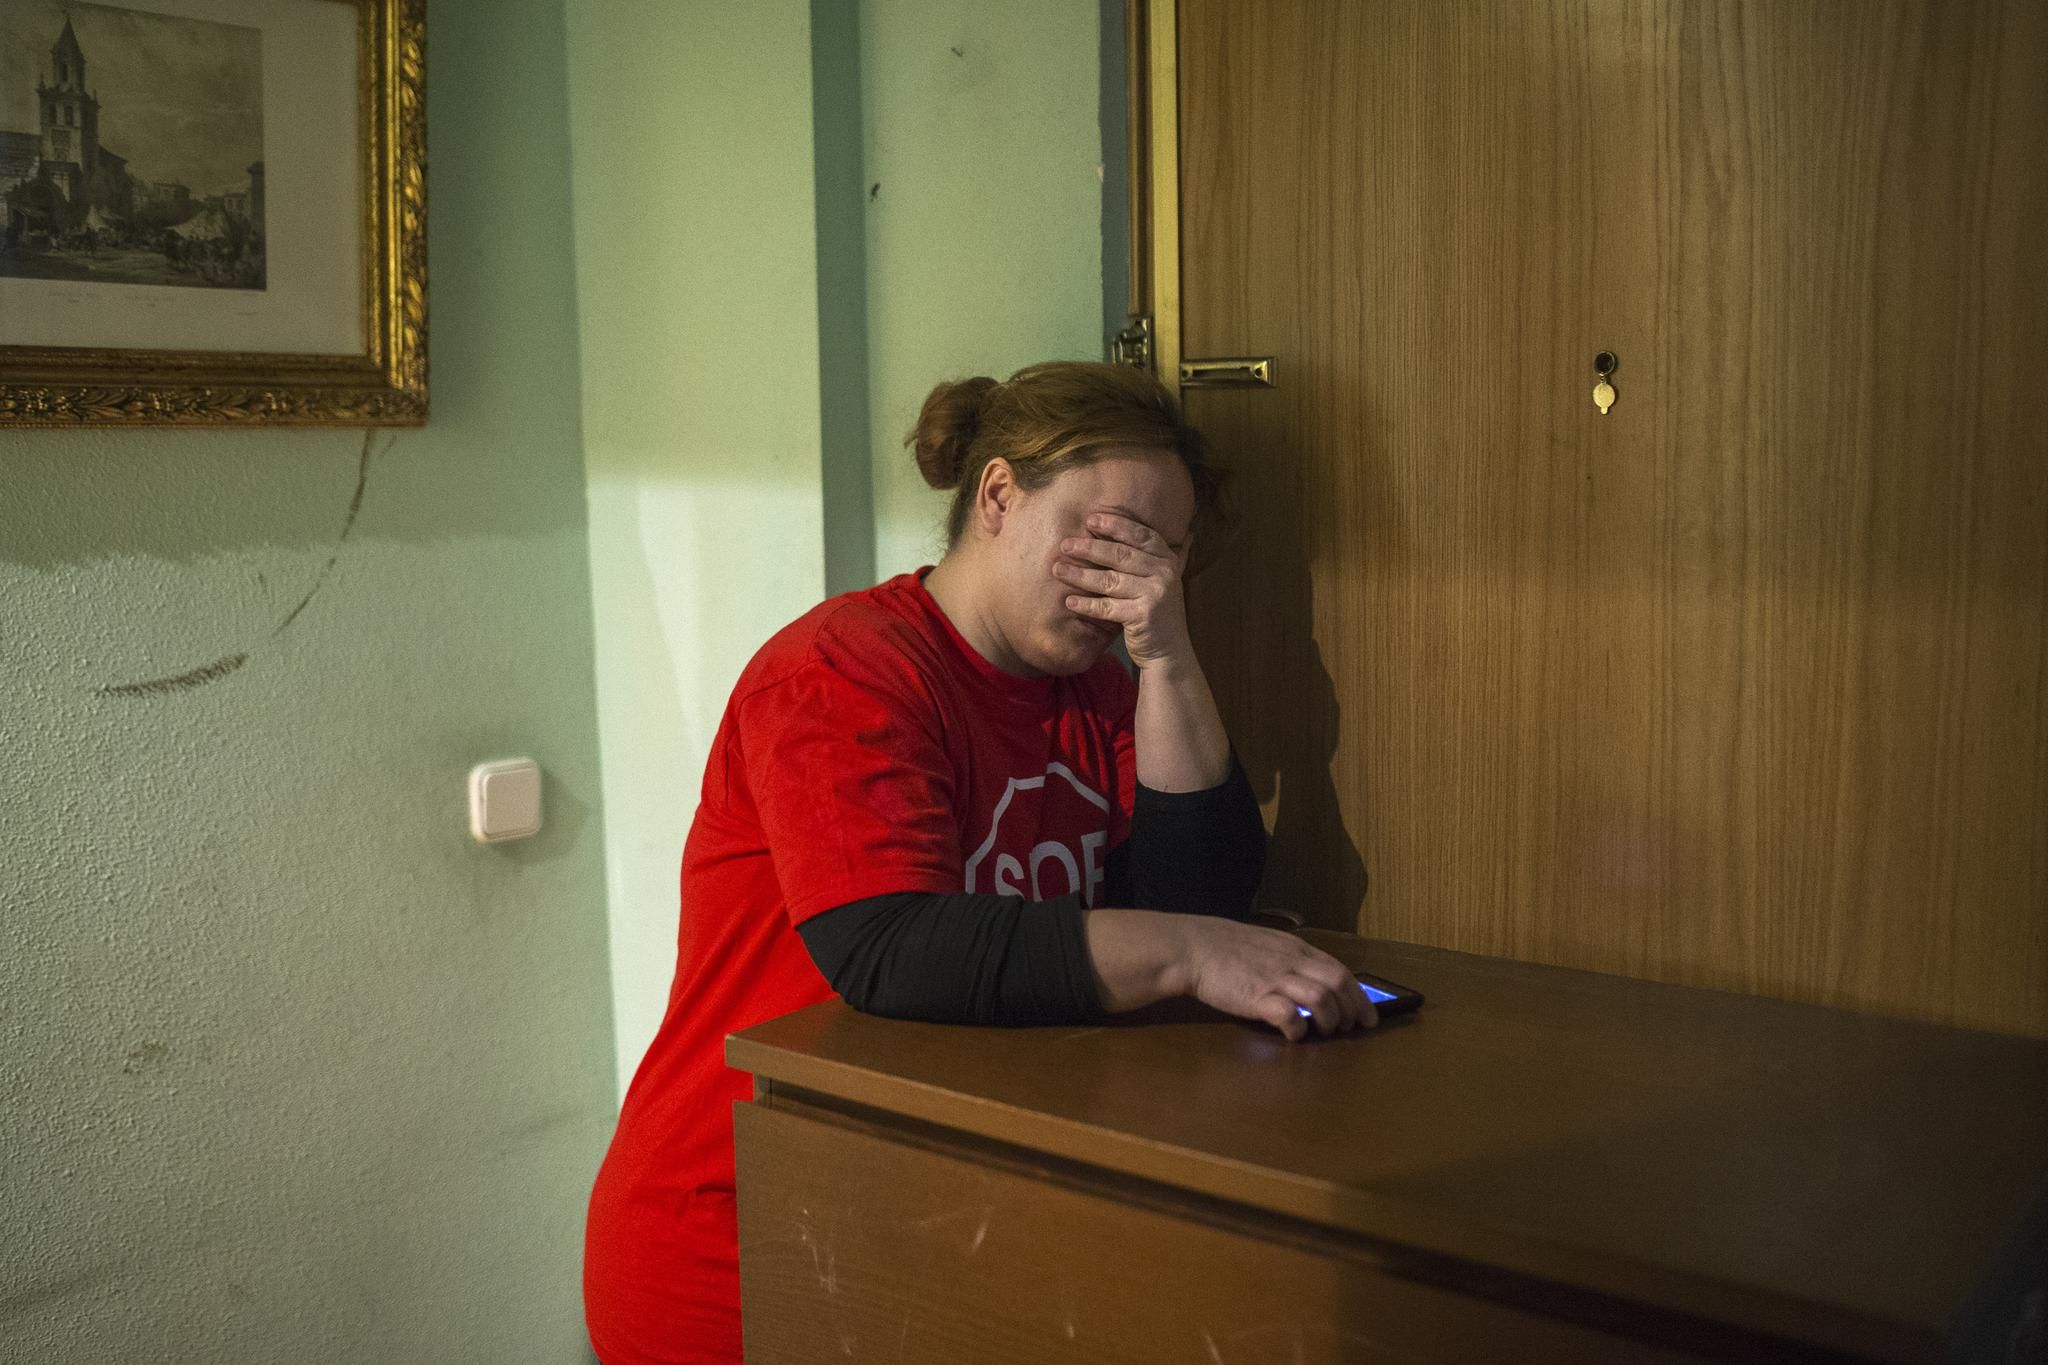 Rosario Echevarria Pedrezuela, 35, tries to stop police from entering the apartment she has occupied for the last ten months with her husband and their two children after they were evicted from their previous home in Madrid on Feb. 16, 2015.